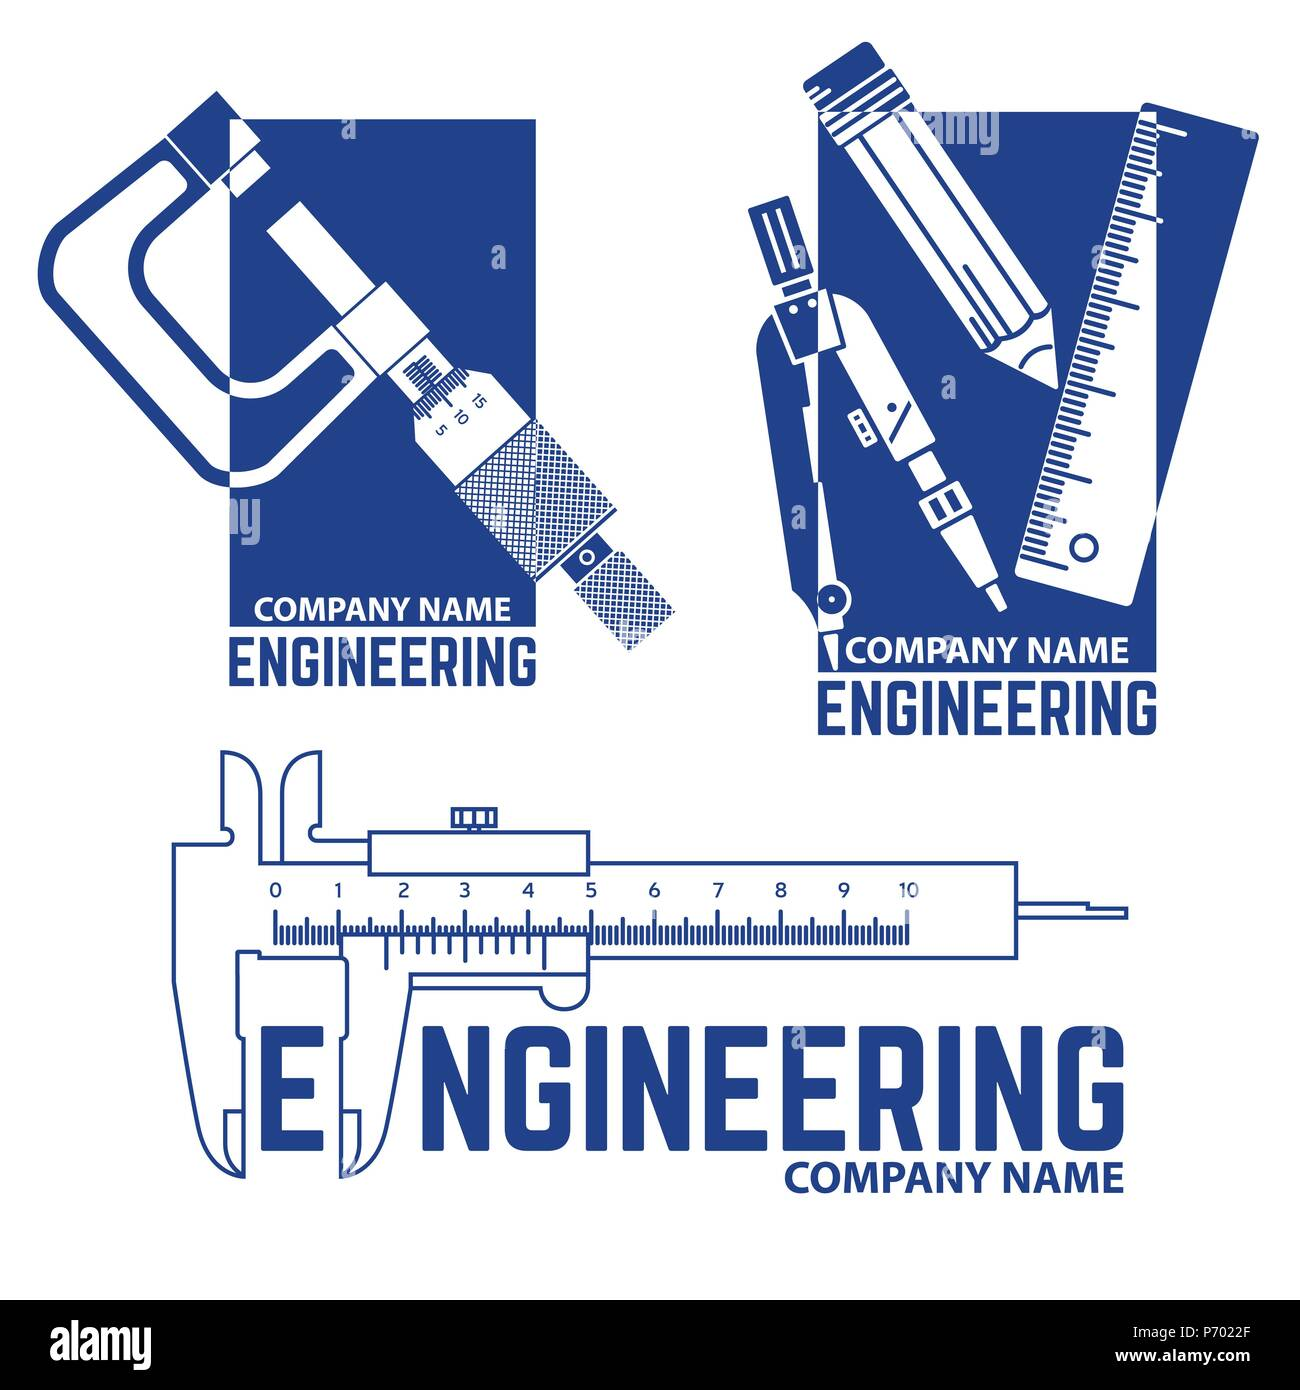 set of engineering company logo template on the white background